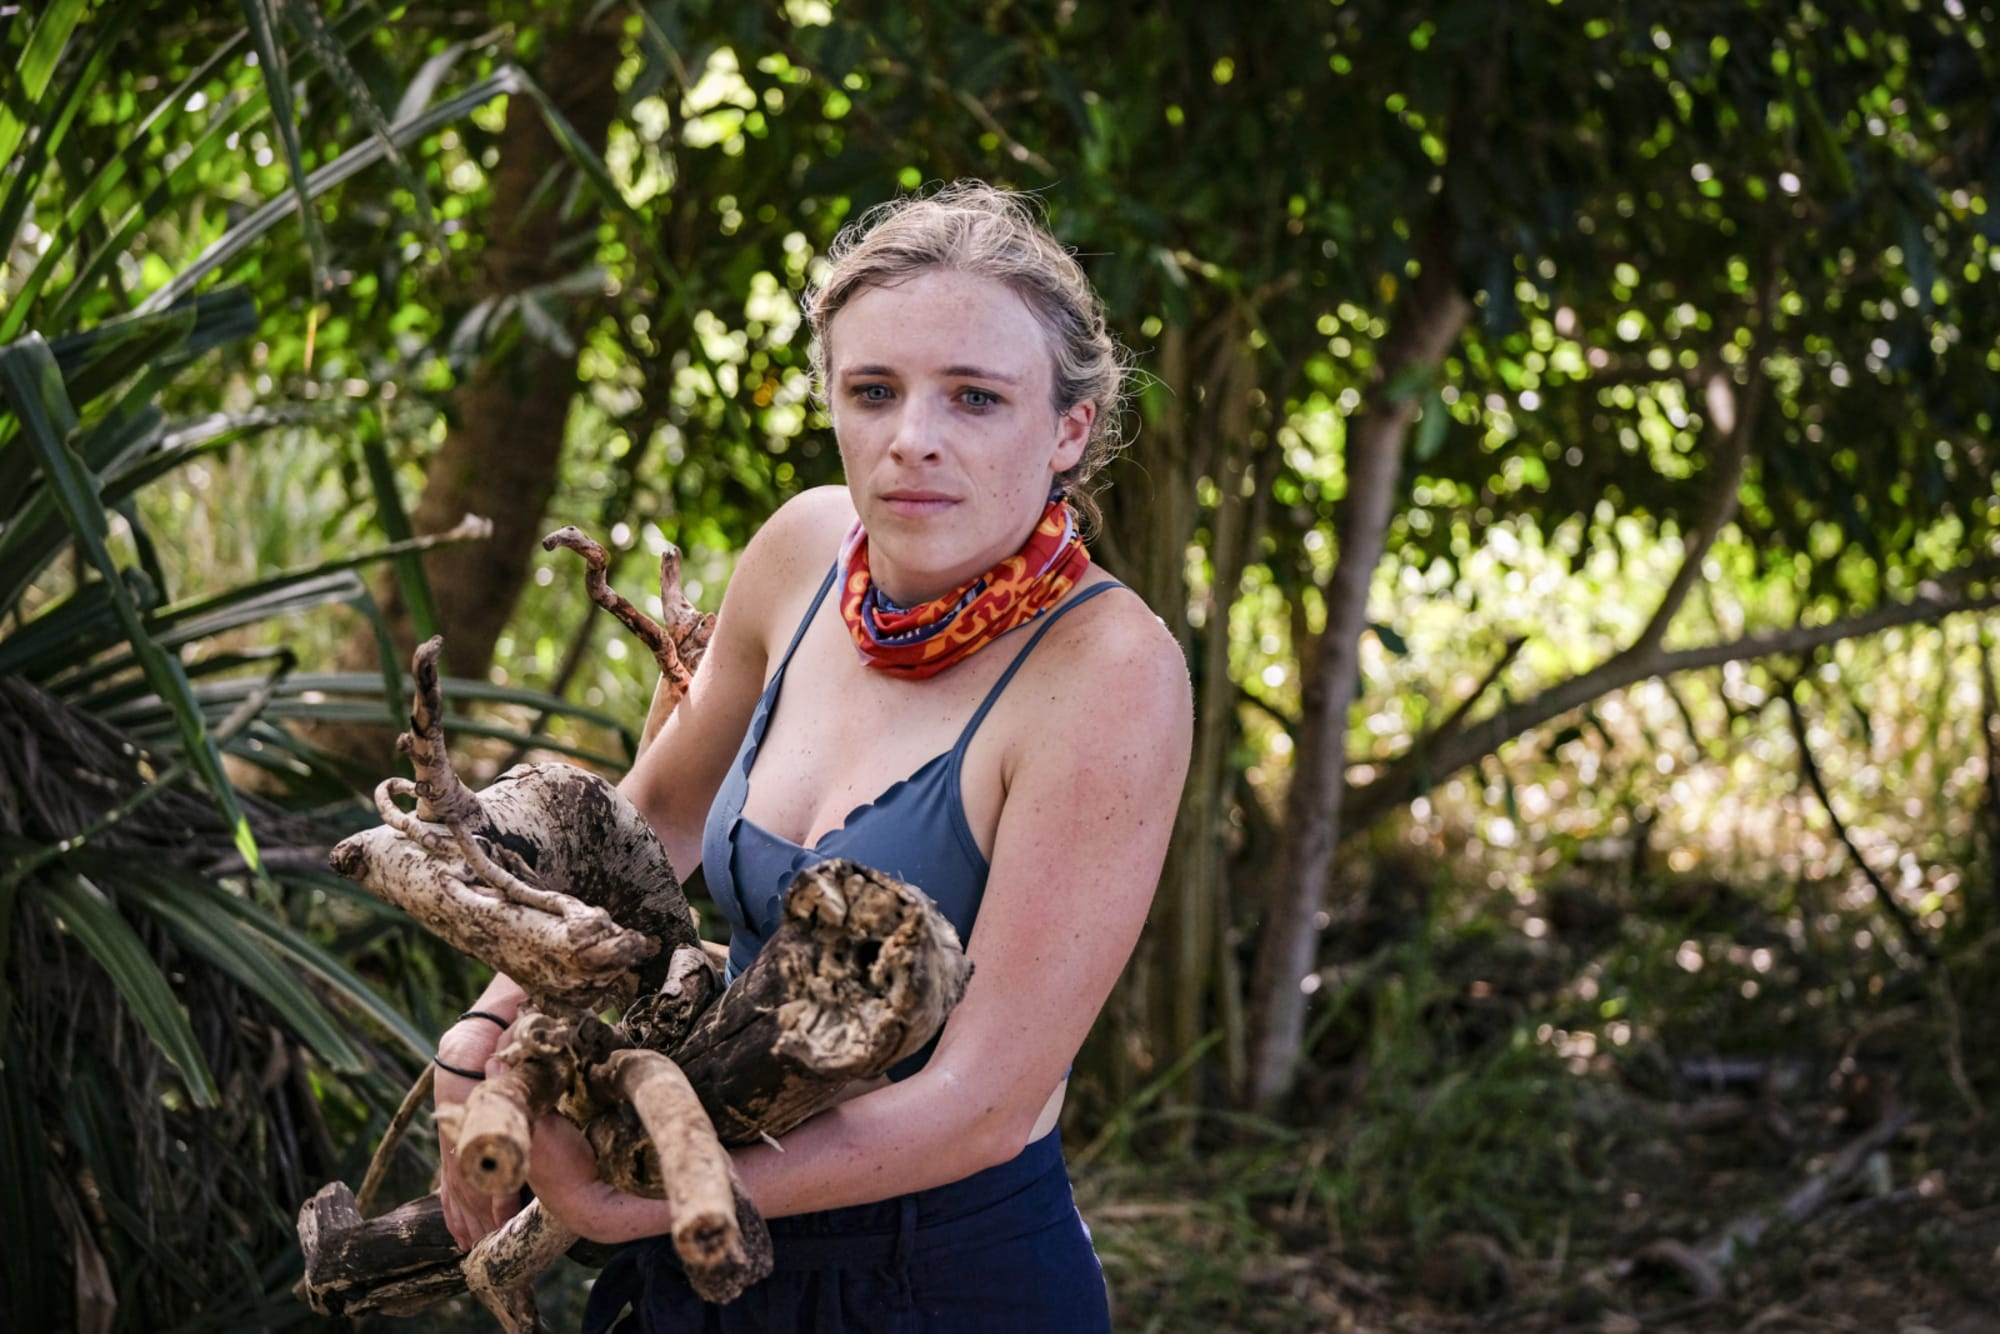 Three most underrated Survivor winners of all-time